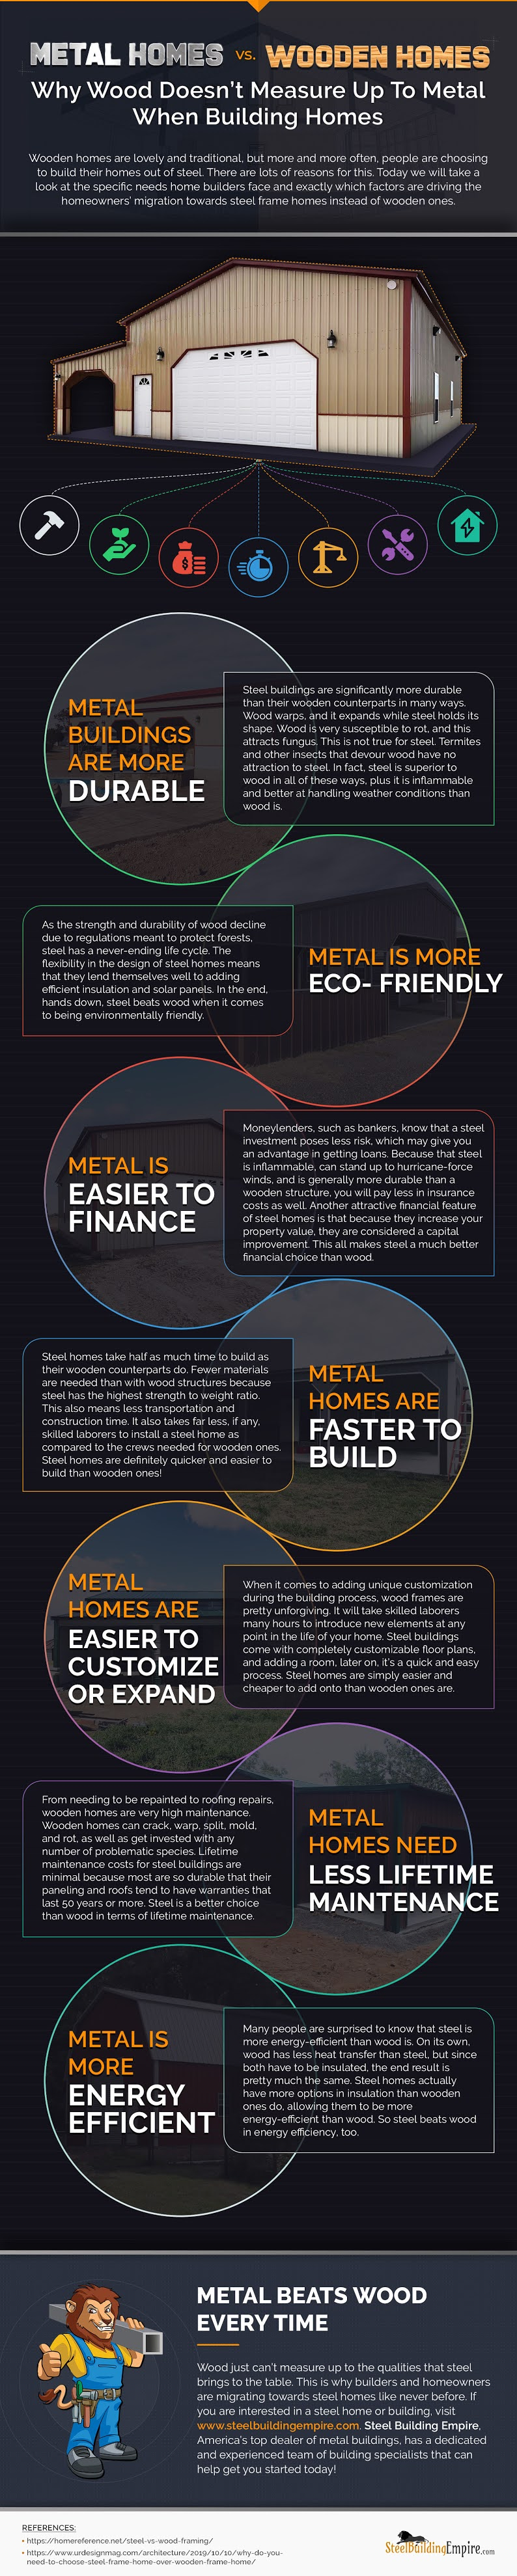 Metal Homes vs. Wooden Homes #infographic #Construction #infographics #Wooden Homes #Metal Homes